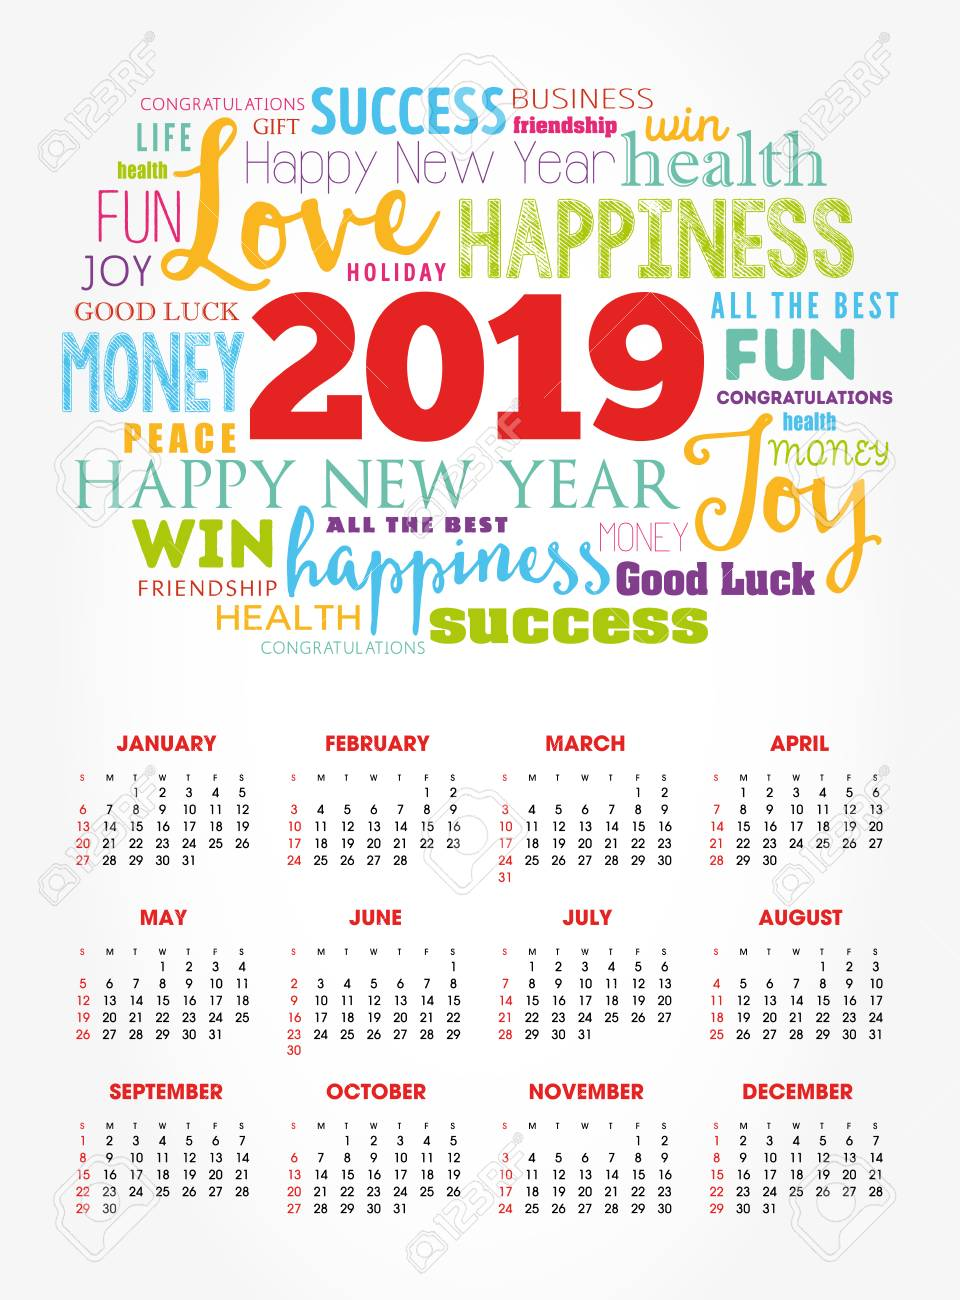 Calendar for 2019 year, greeting word cloud collage, Happy New